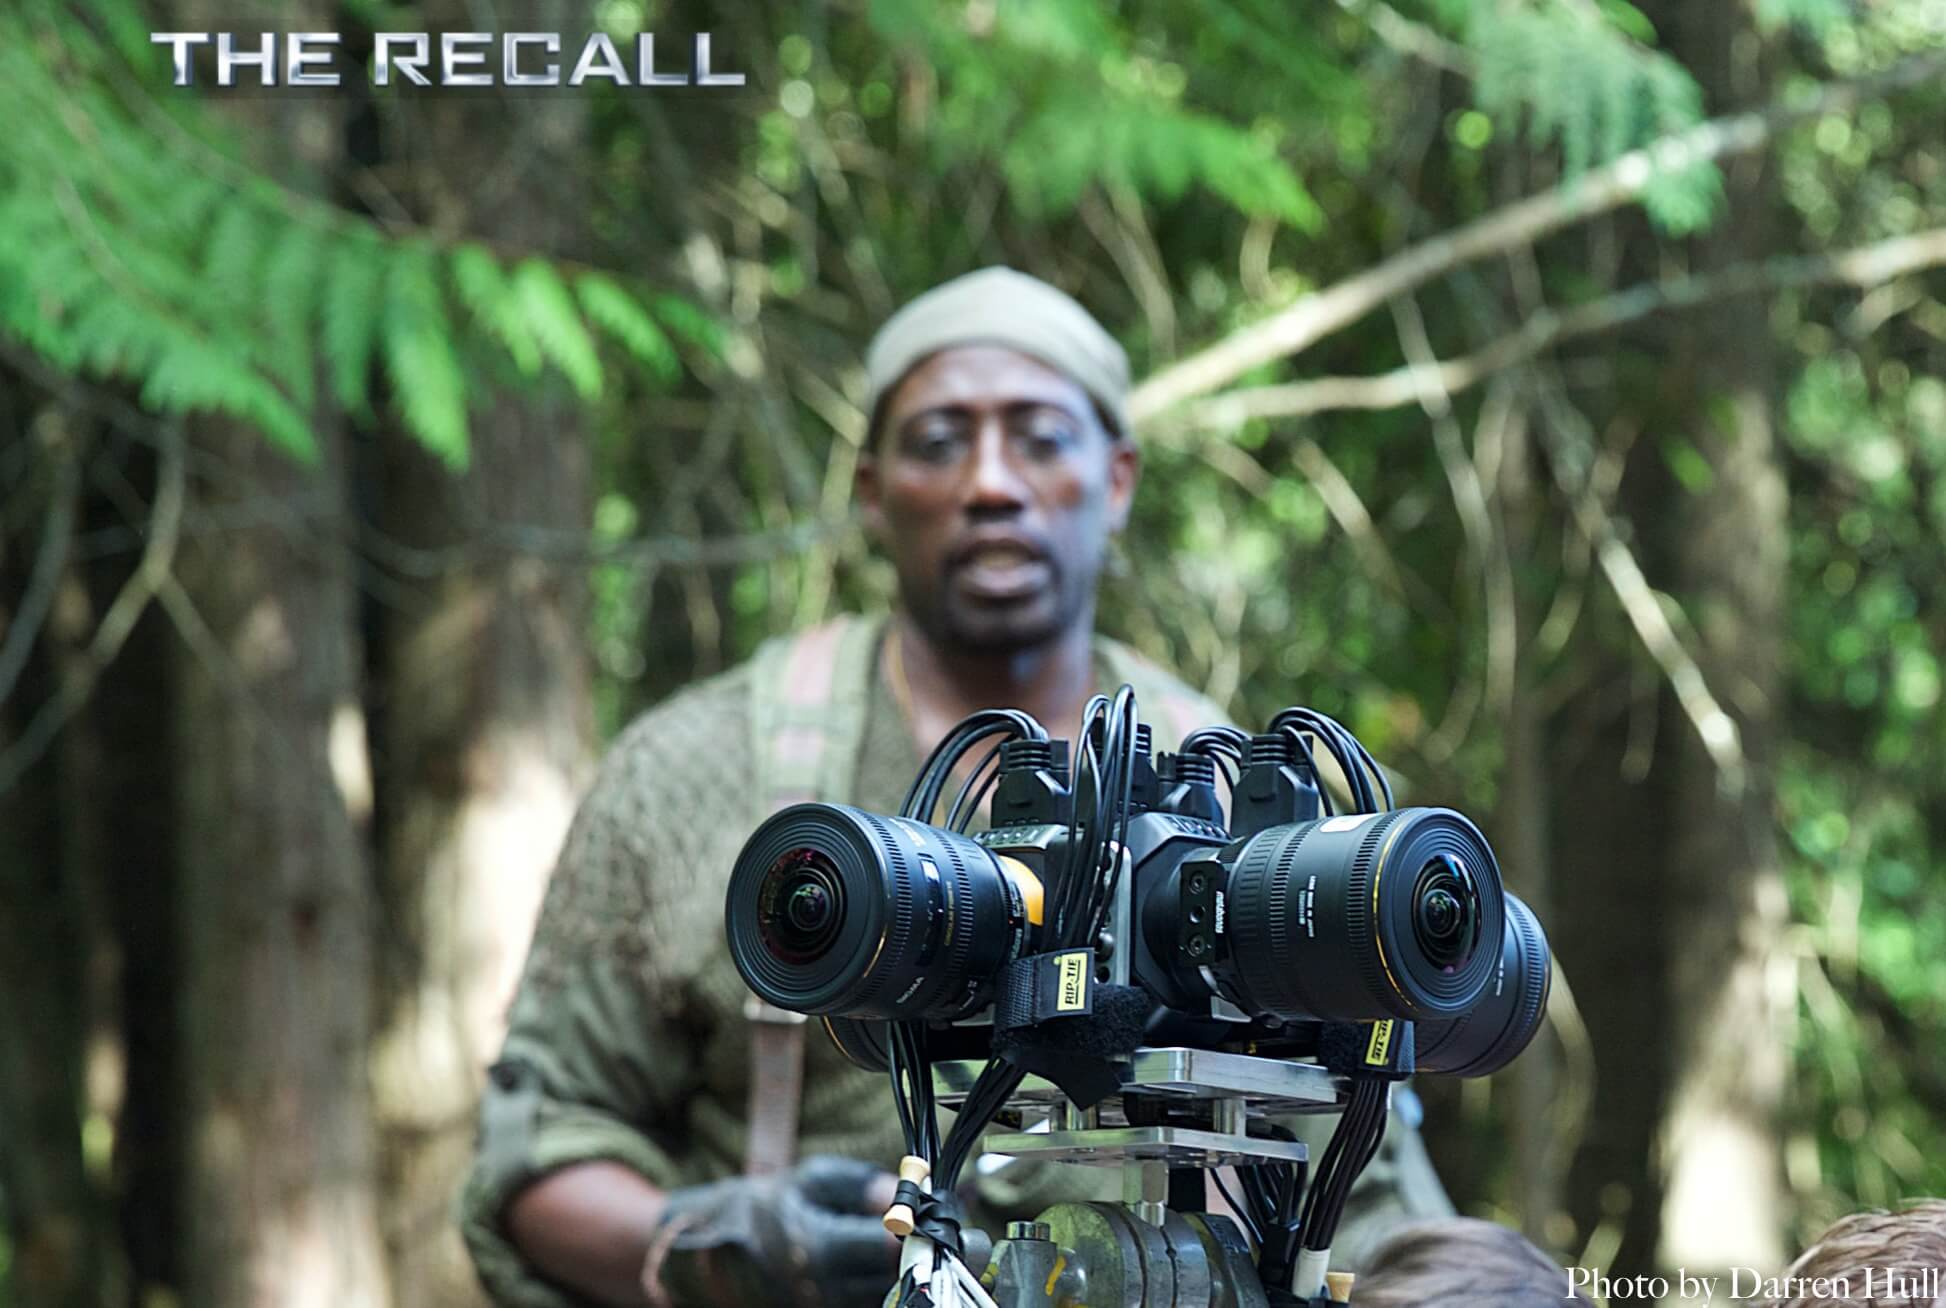 Wesley Snipes the recall abduction3 1 - Wesley Snipes Fights Aliens in The Recall VR Abduction